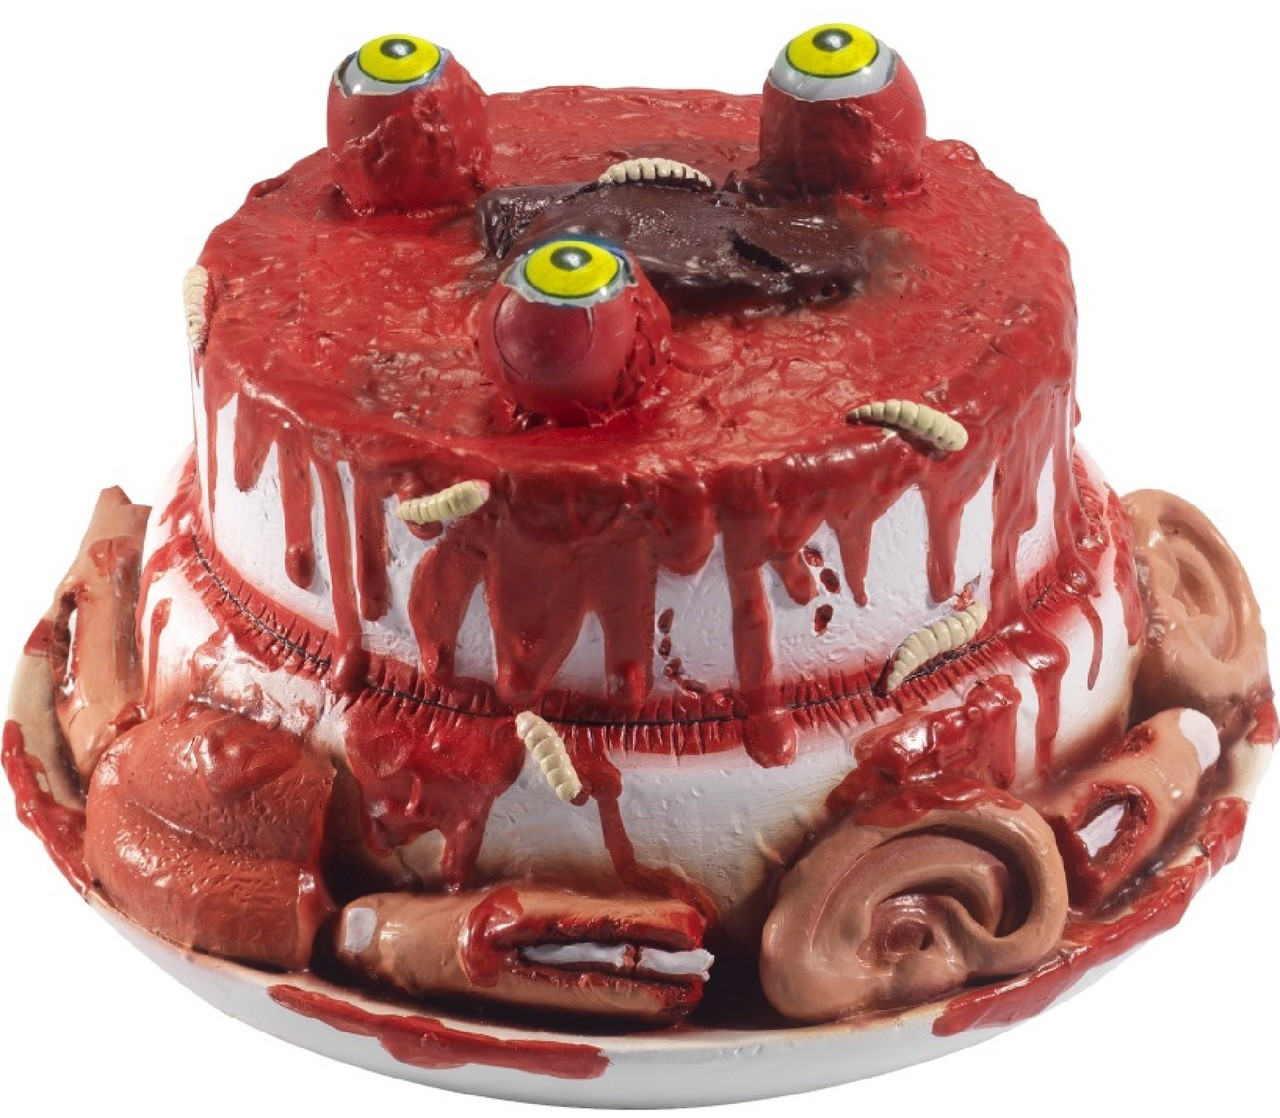 halloween gourmet zombie cake party prop fancy me limited. Black Bedroom Furniture Sets. Home Design Ideas